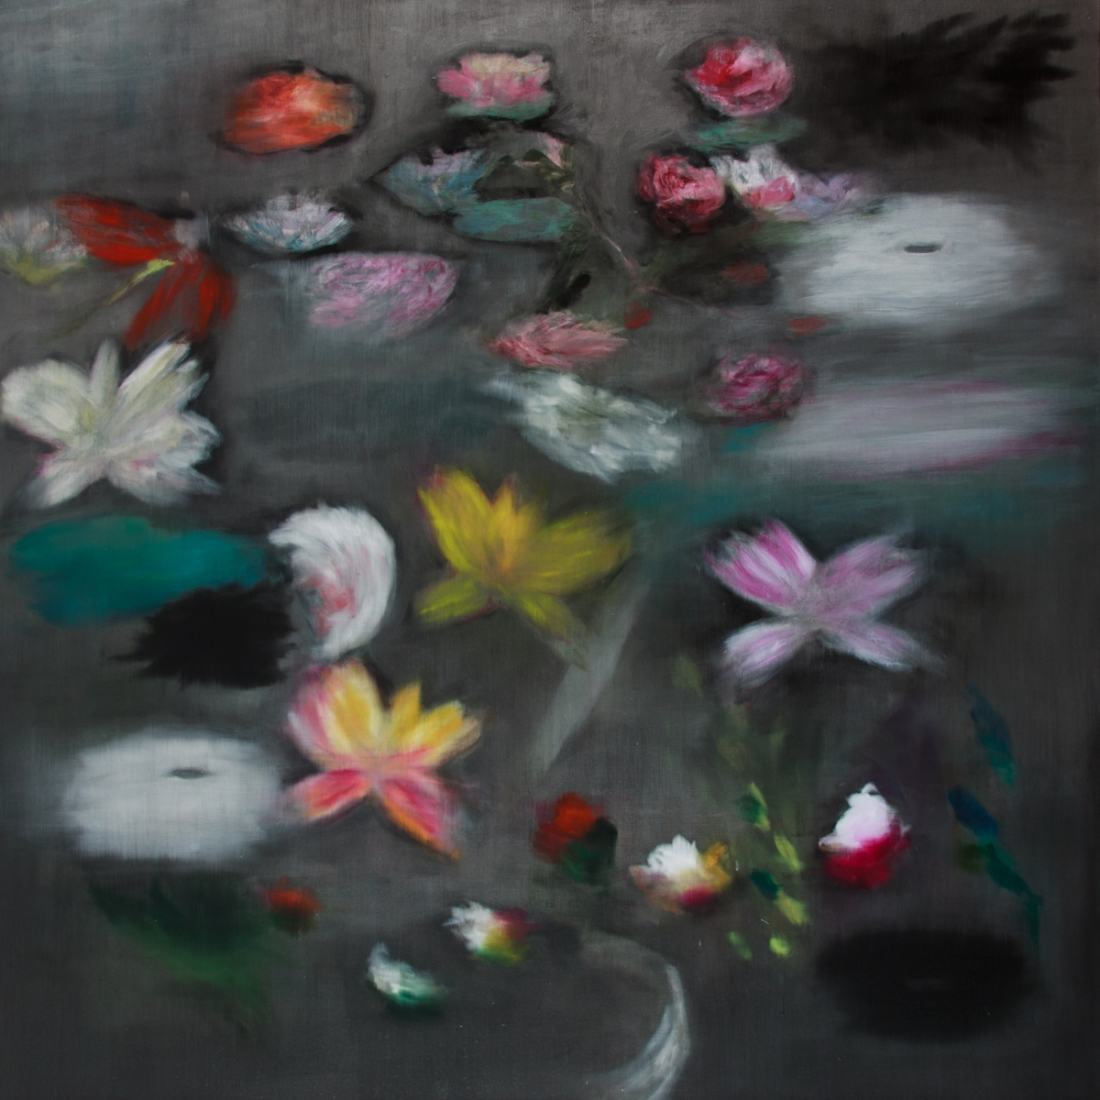 Ross Bleckner, Handful After Handful, 2009.